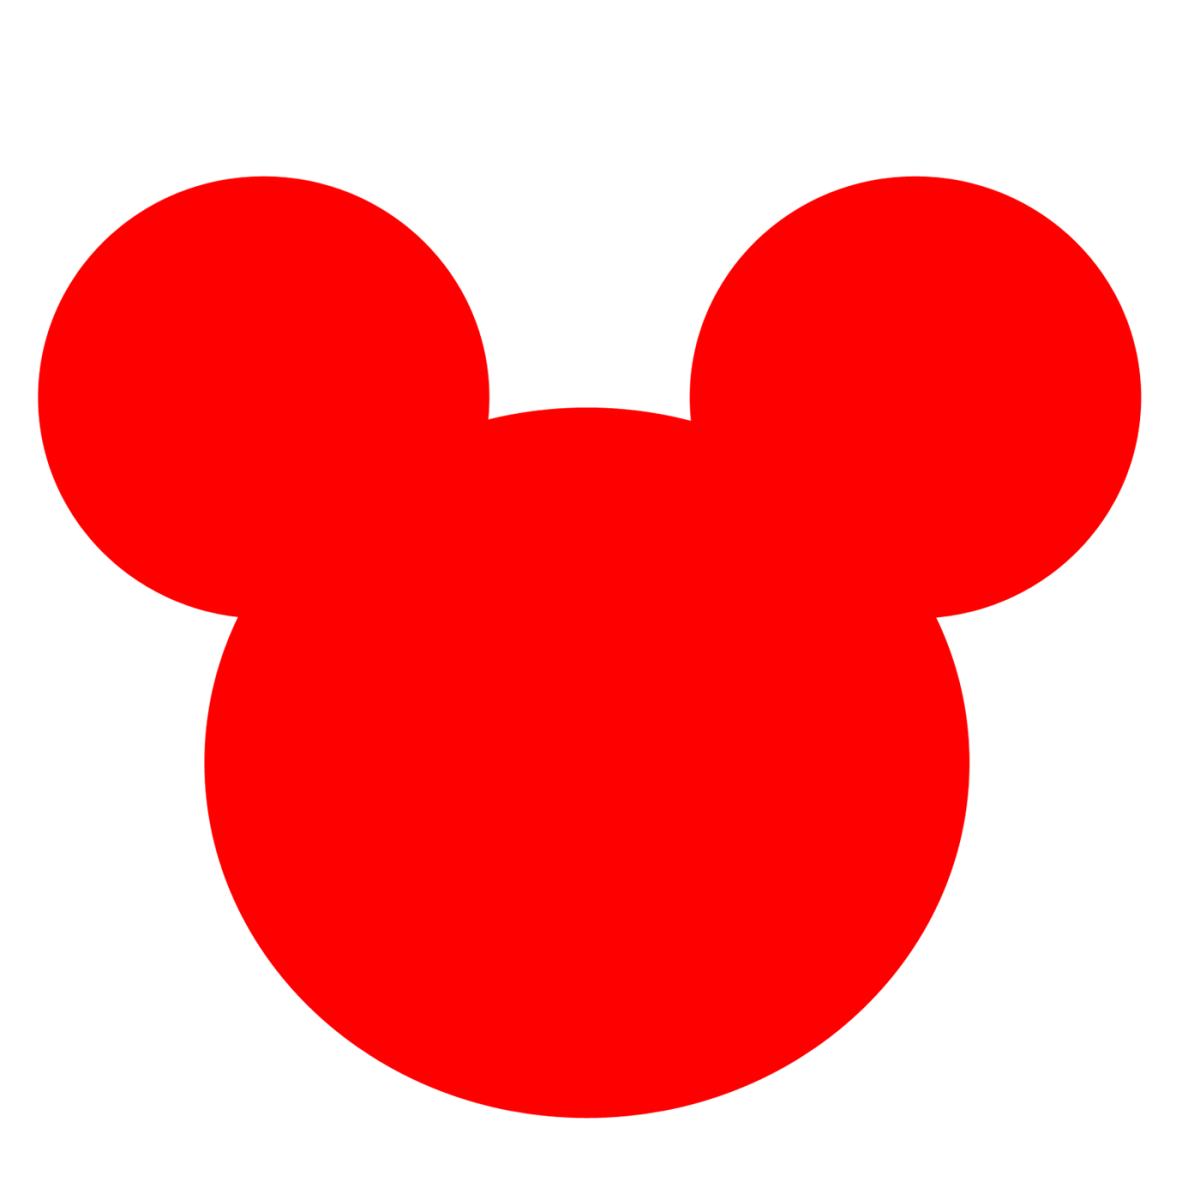 Mickey symbol png. Mouse logo backgrounds hdq